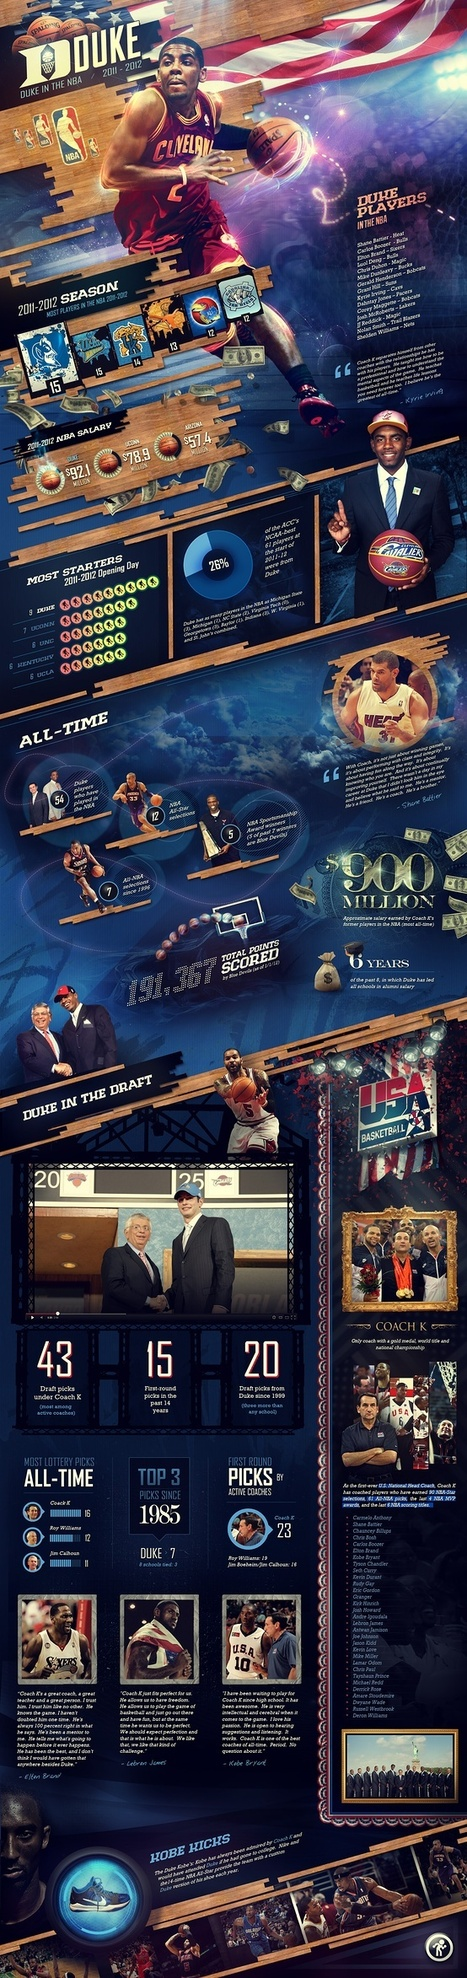 Duke in The NBA - Web Design Interfaces | Free Resources for Designer | Scoop.it